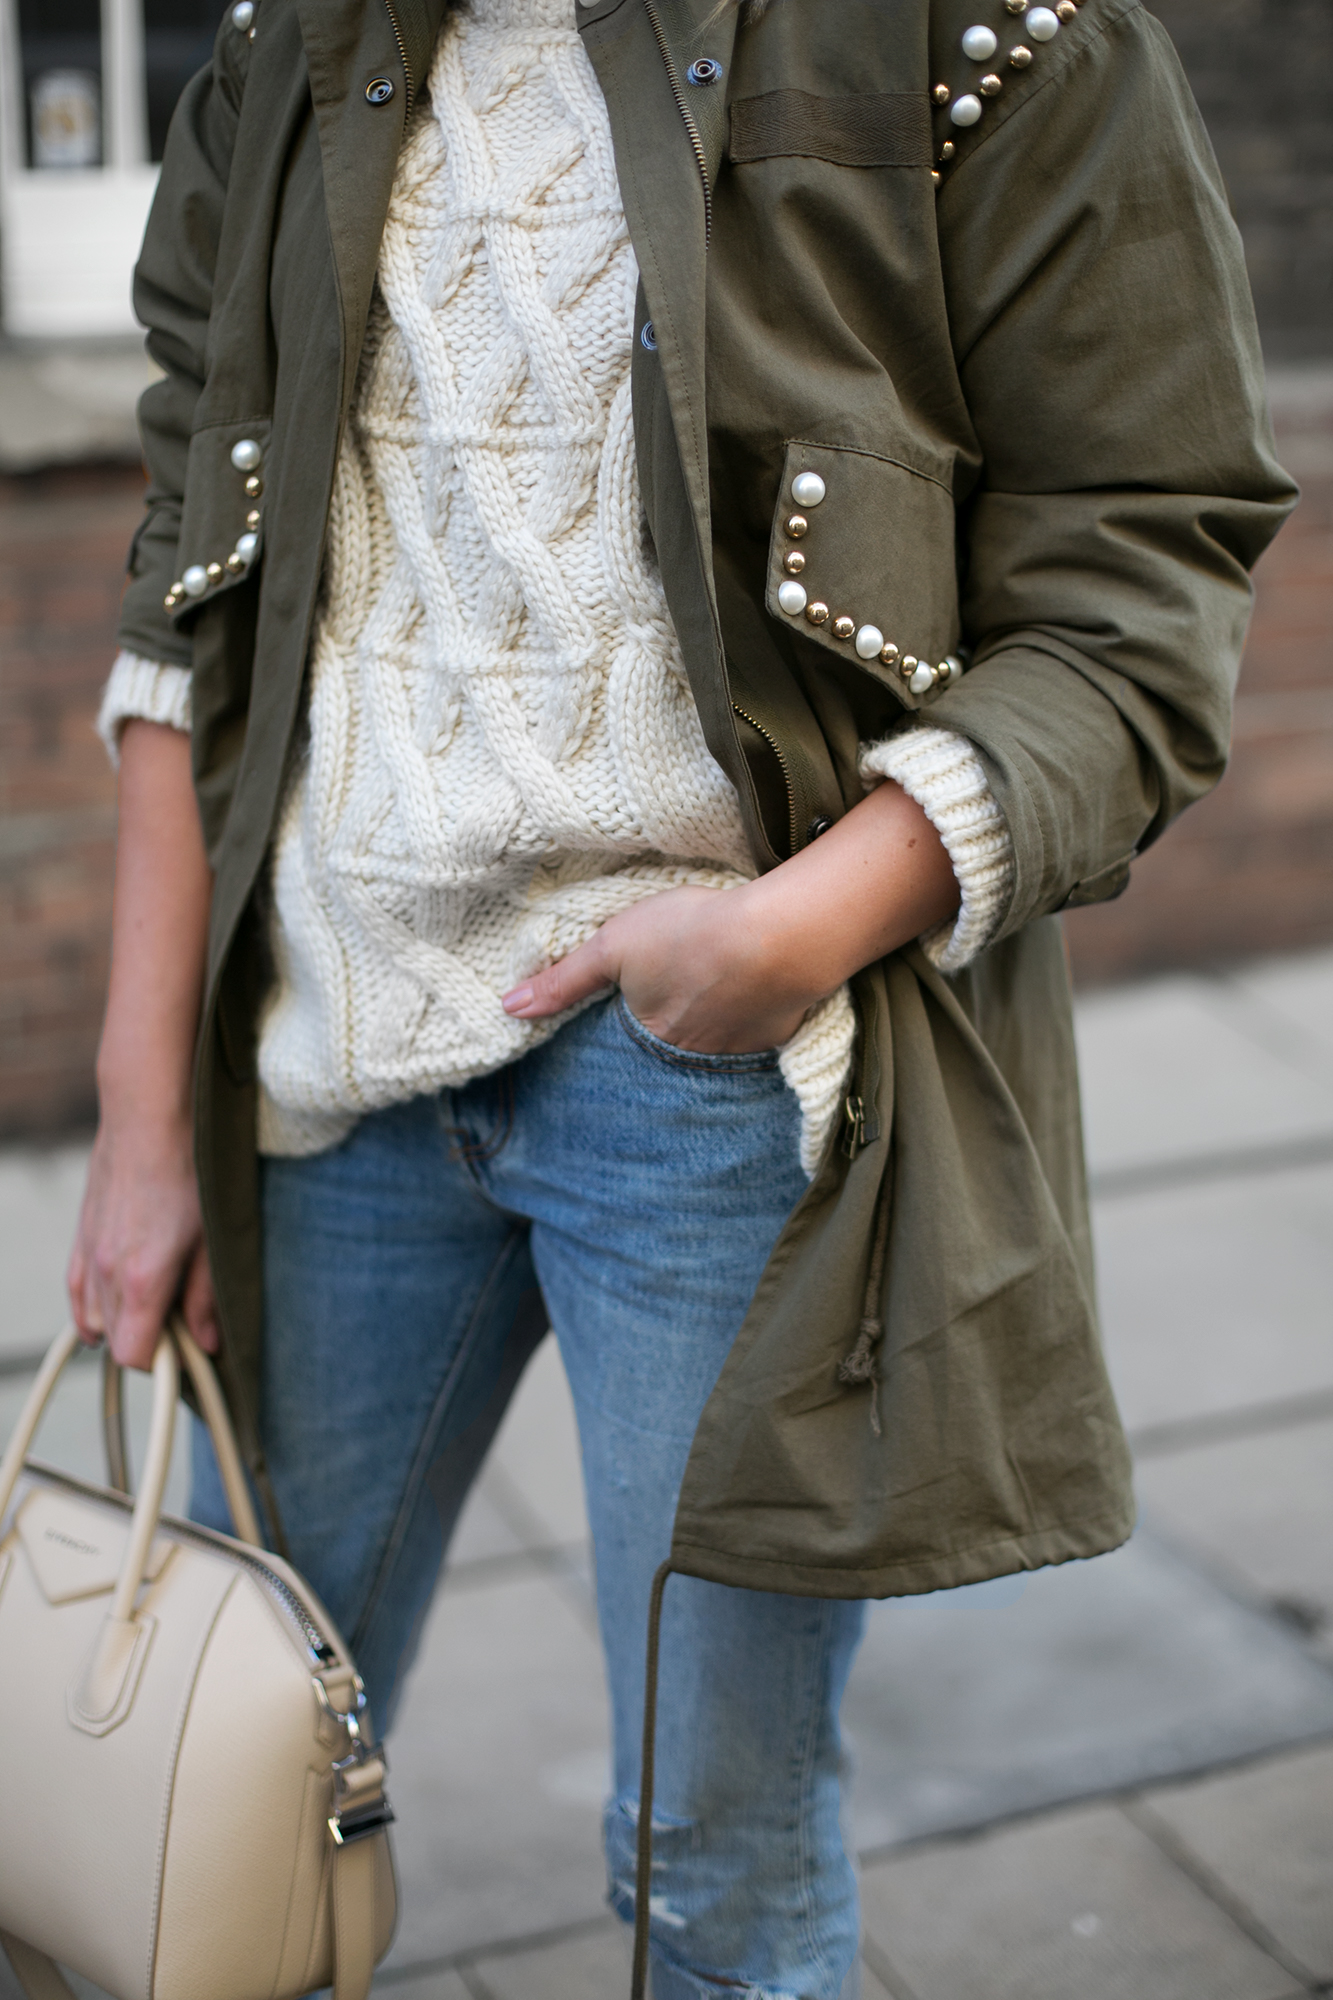 khaki embellished jacket, ripped Levis 501 jeans, cream cable knit jumper, cream Givenchy antigona bag small, beige suede Jimmy Choo Roma pumps, chic winter outfit